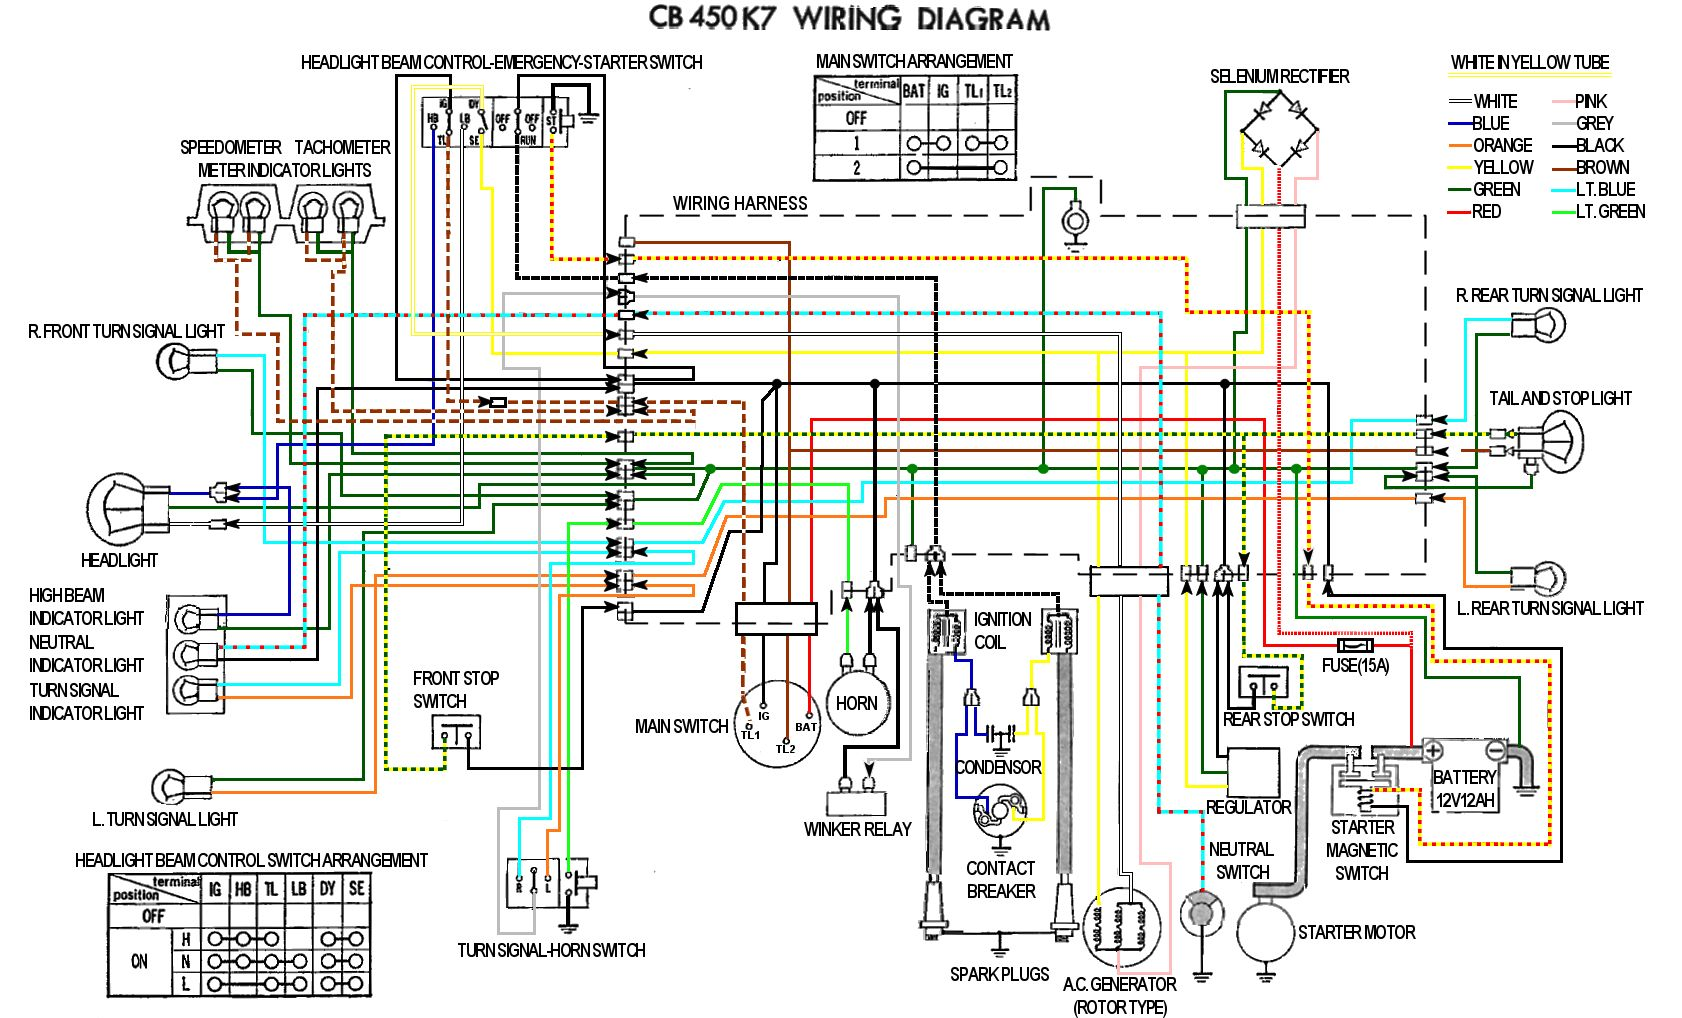 wiring installation diagram clarion harness cb450 color now corrected